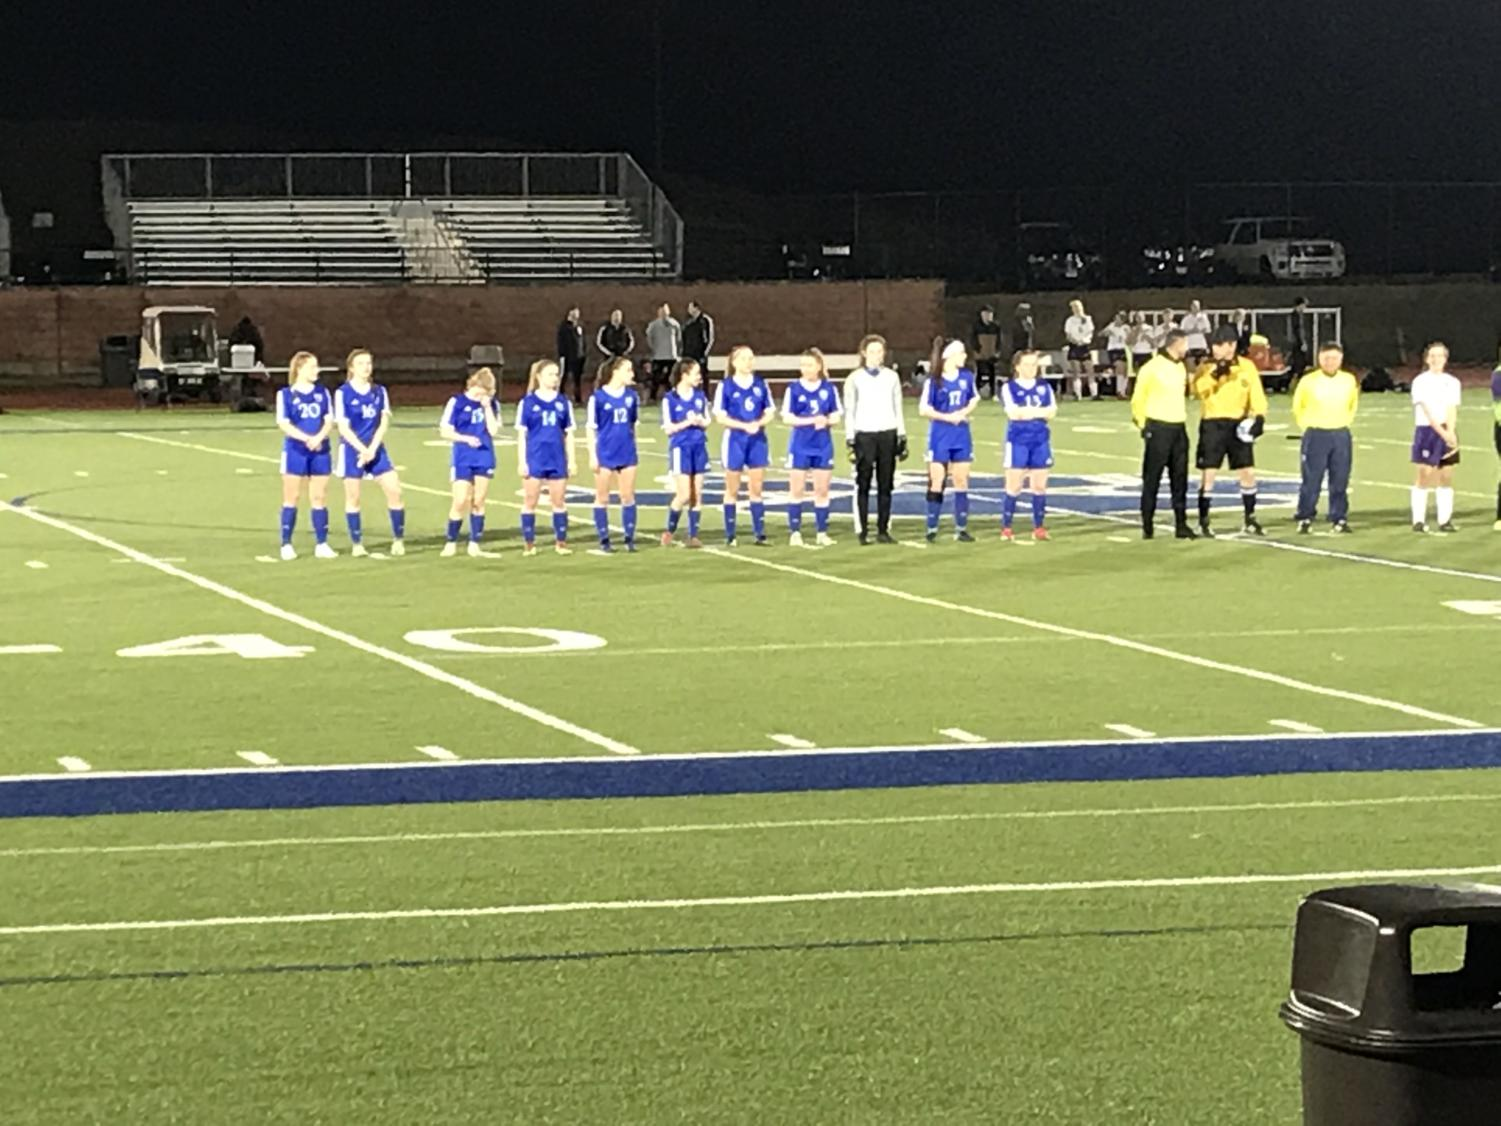 Starters for the girls soccer team line up for the National Anthem prior to their game against Wauconda High School.